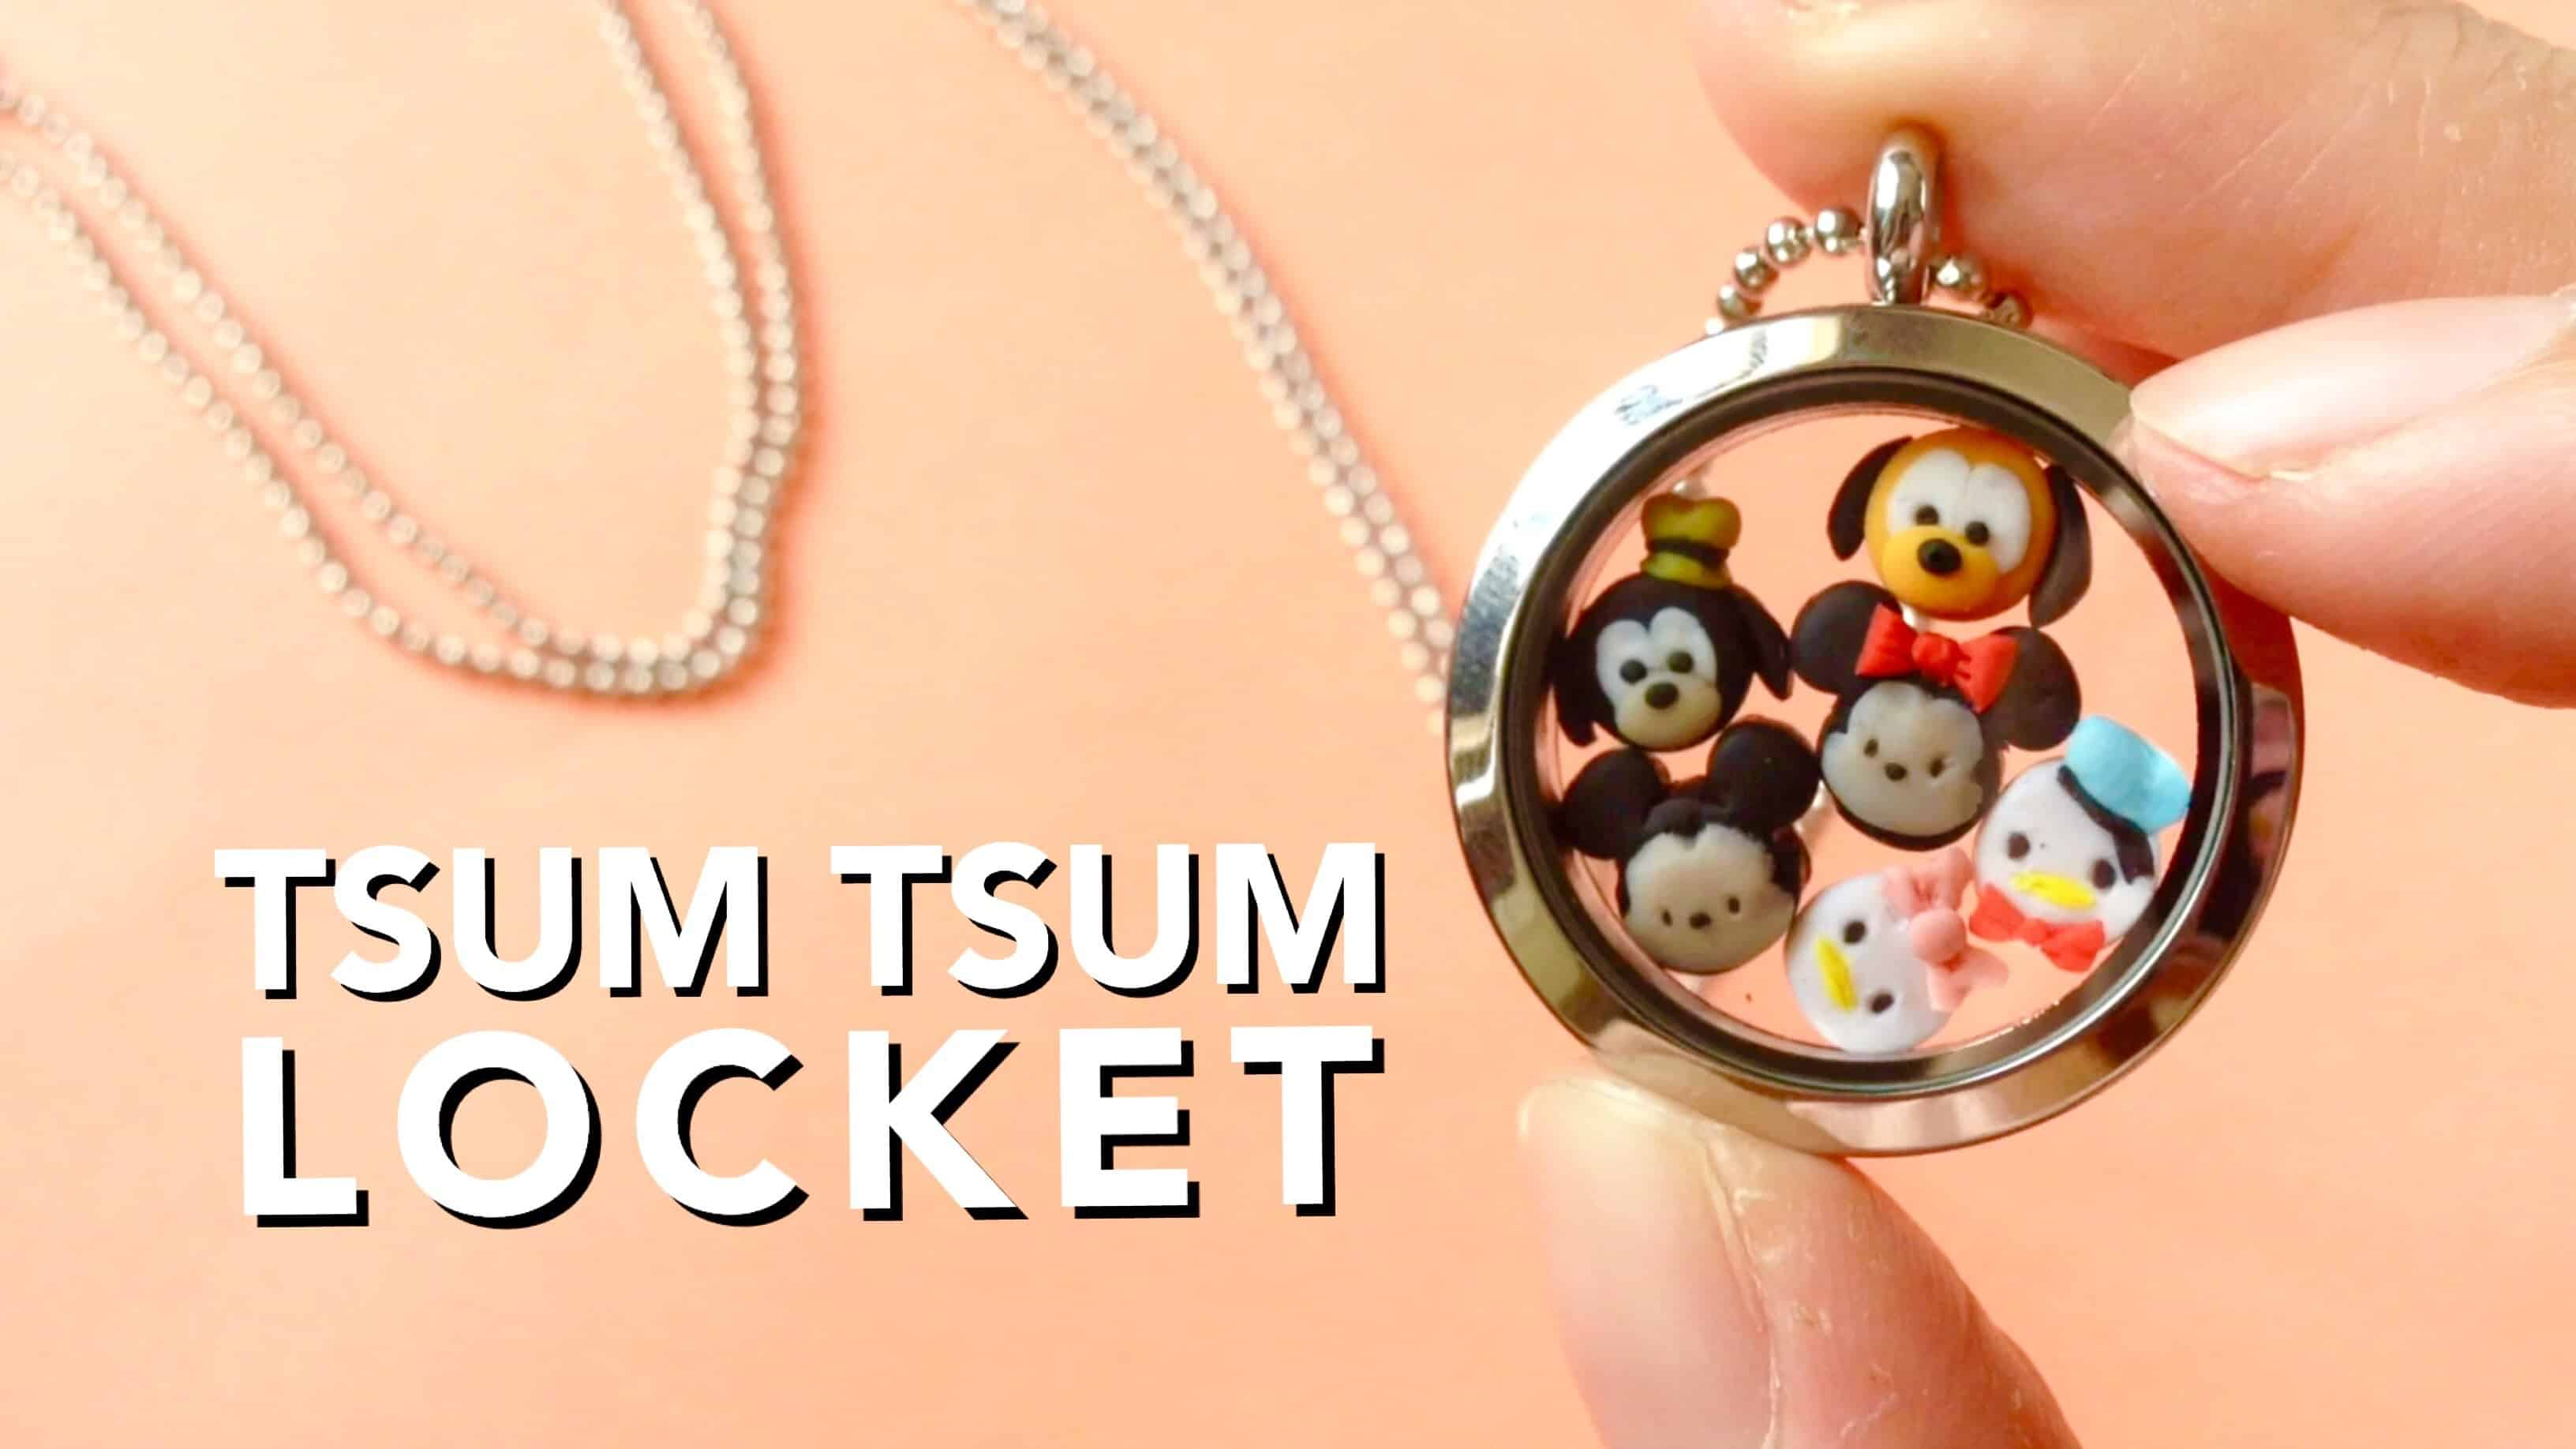 Mini clay tsum tsums locket